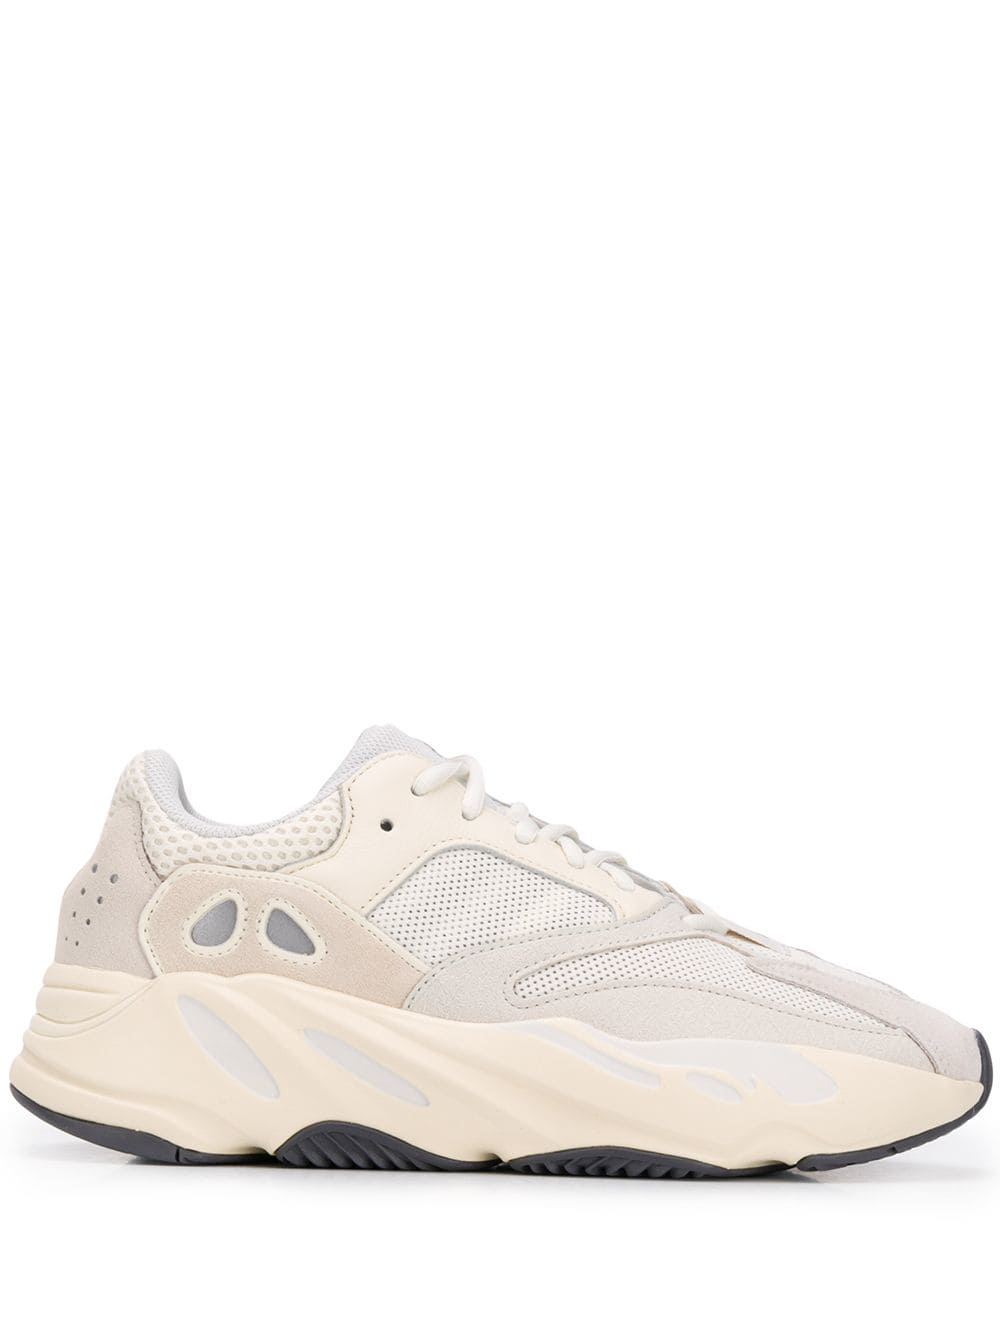 new arrival 242b2 9fafc Adidas Yeezy 700 Analog Sneakers in 2019 | Products | Yeezy ...